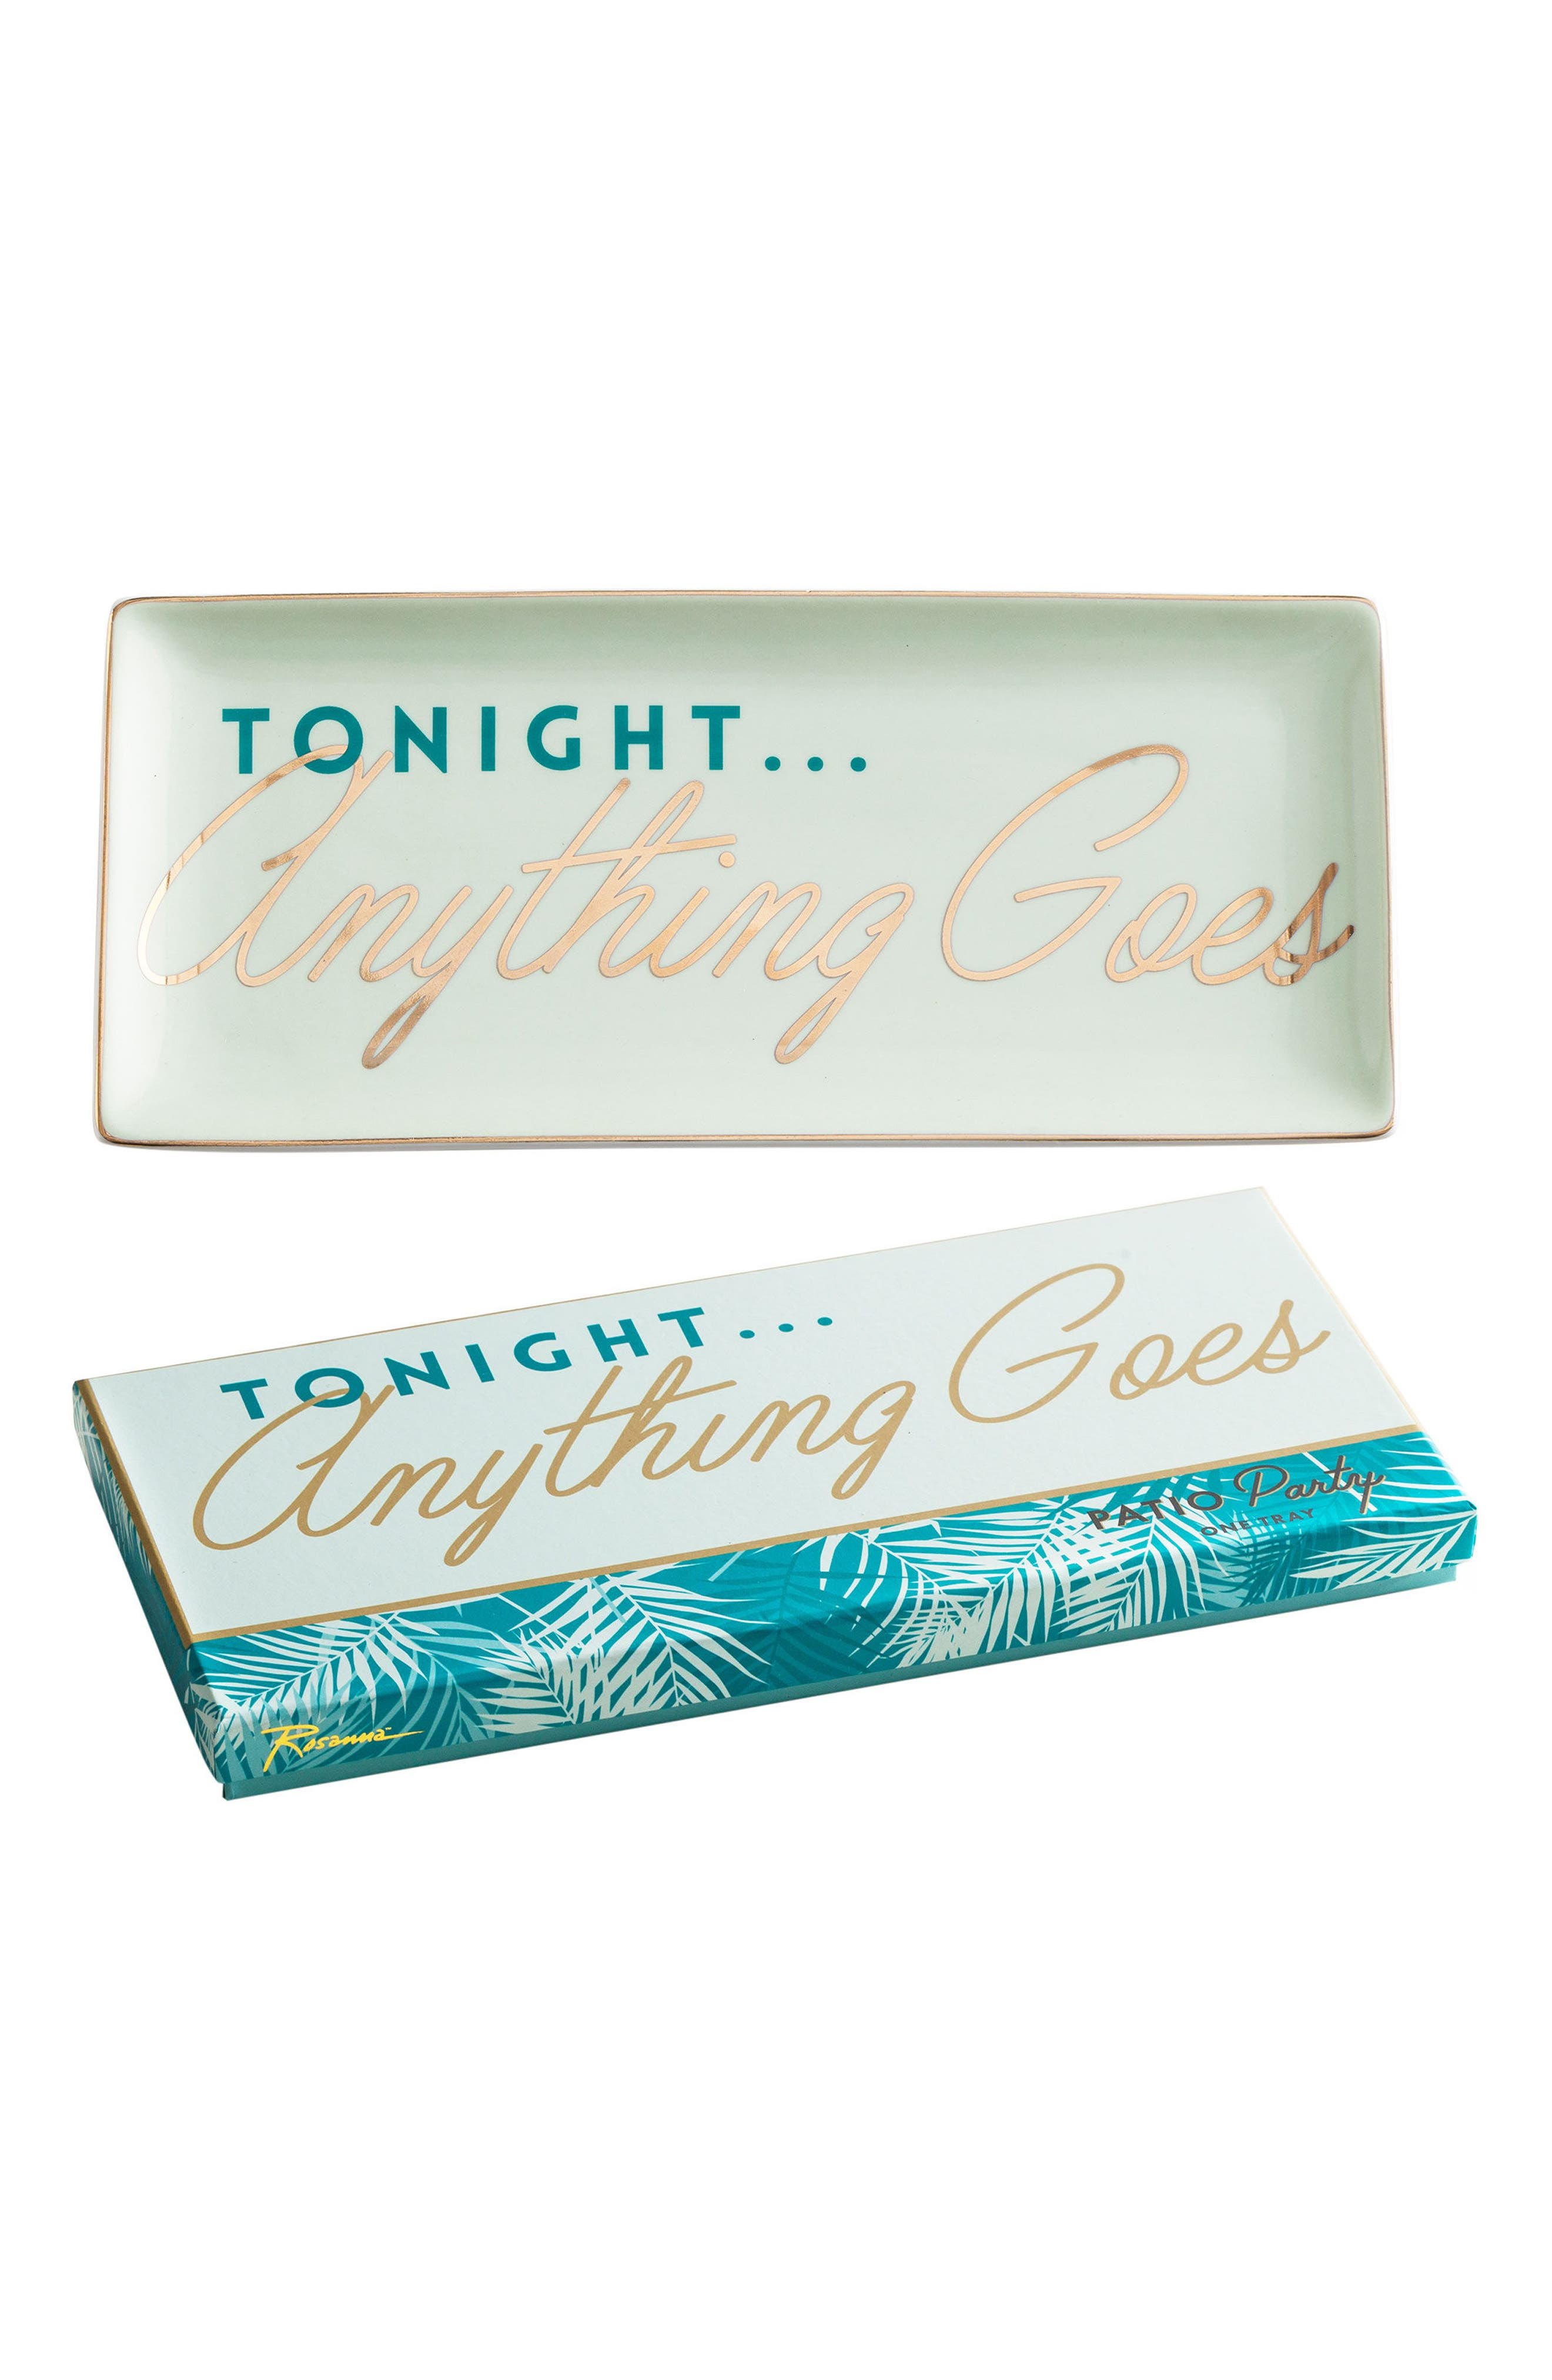 Anything Goes Porcelain Trinket Tray,                             Main thumbnail 1, color,                             White